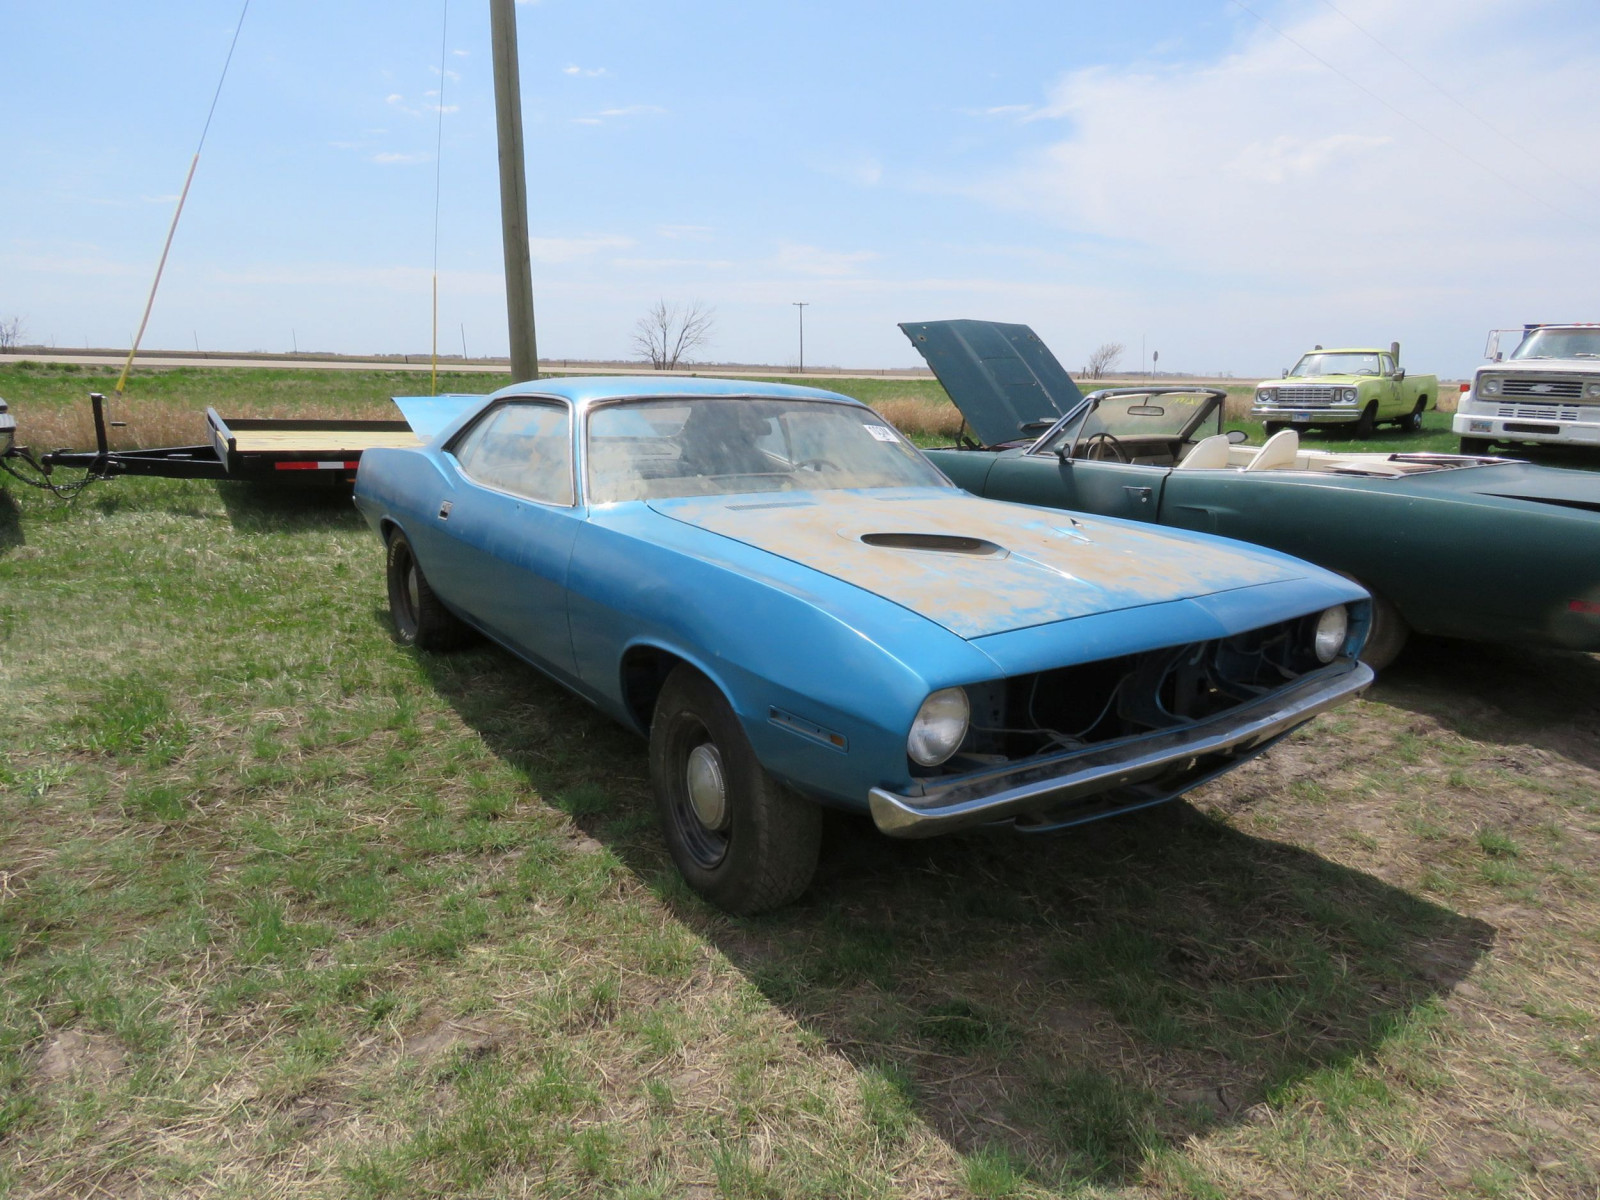 1970 Plymouth Cuda Coupe - Image 3